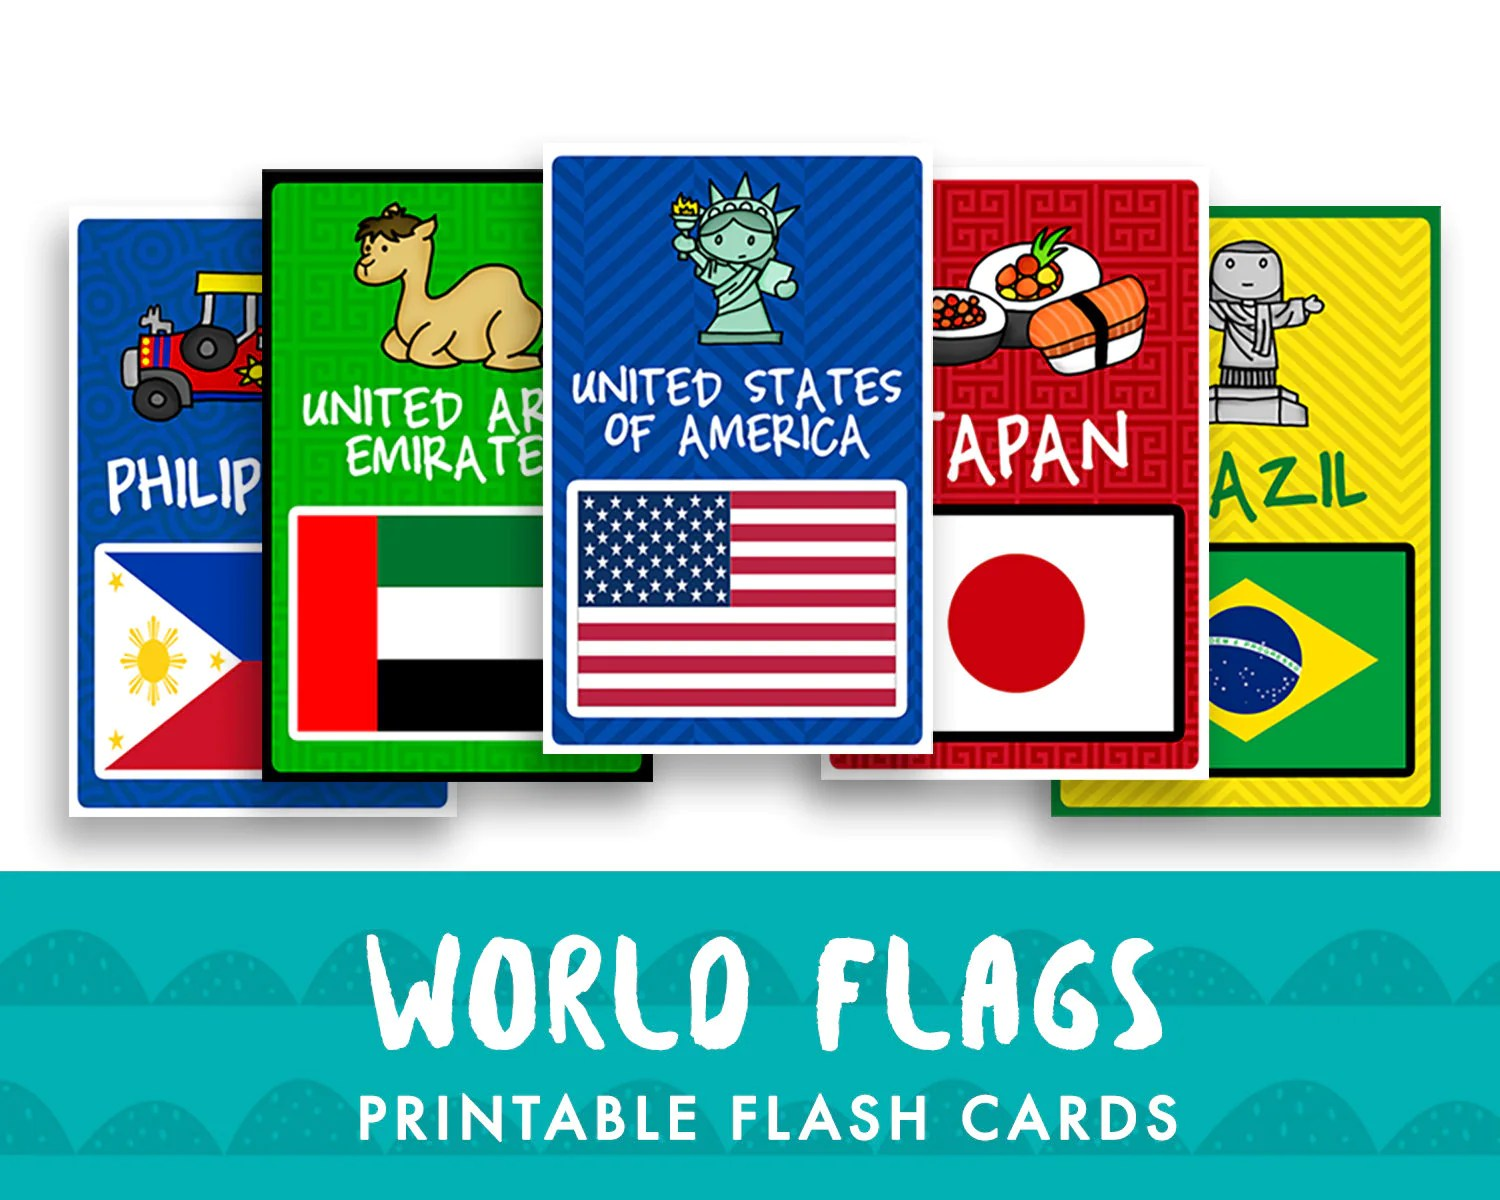 World Flags Printable Flash Cards For Kids Room Decor